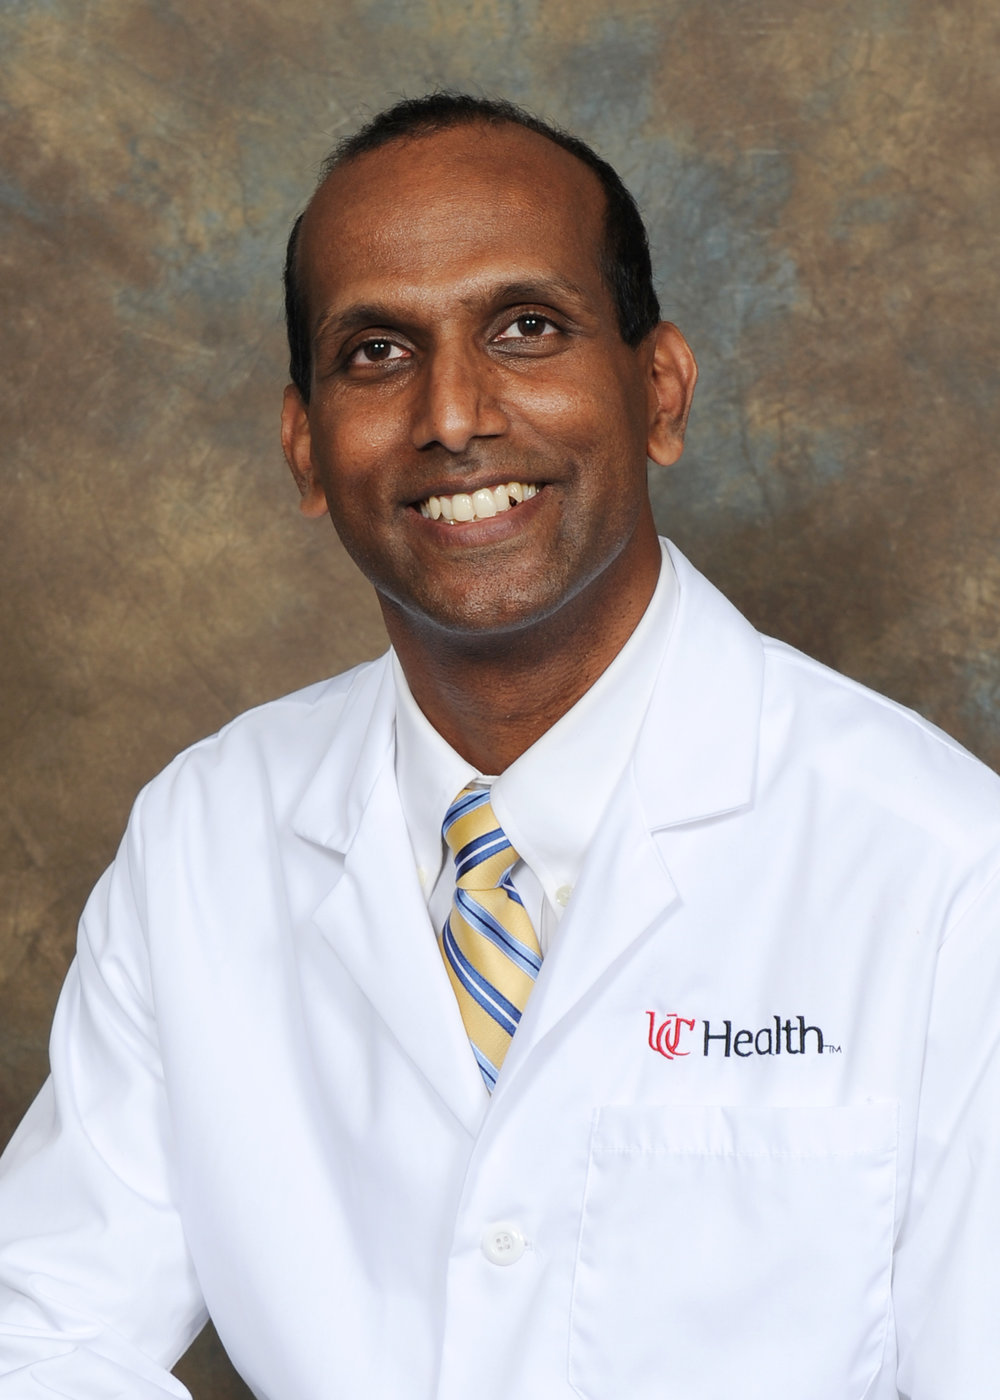 Narayn Pillai, MD